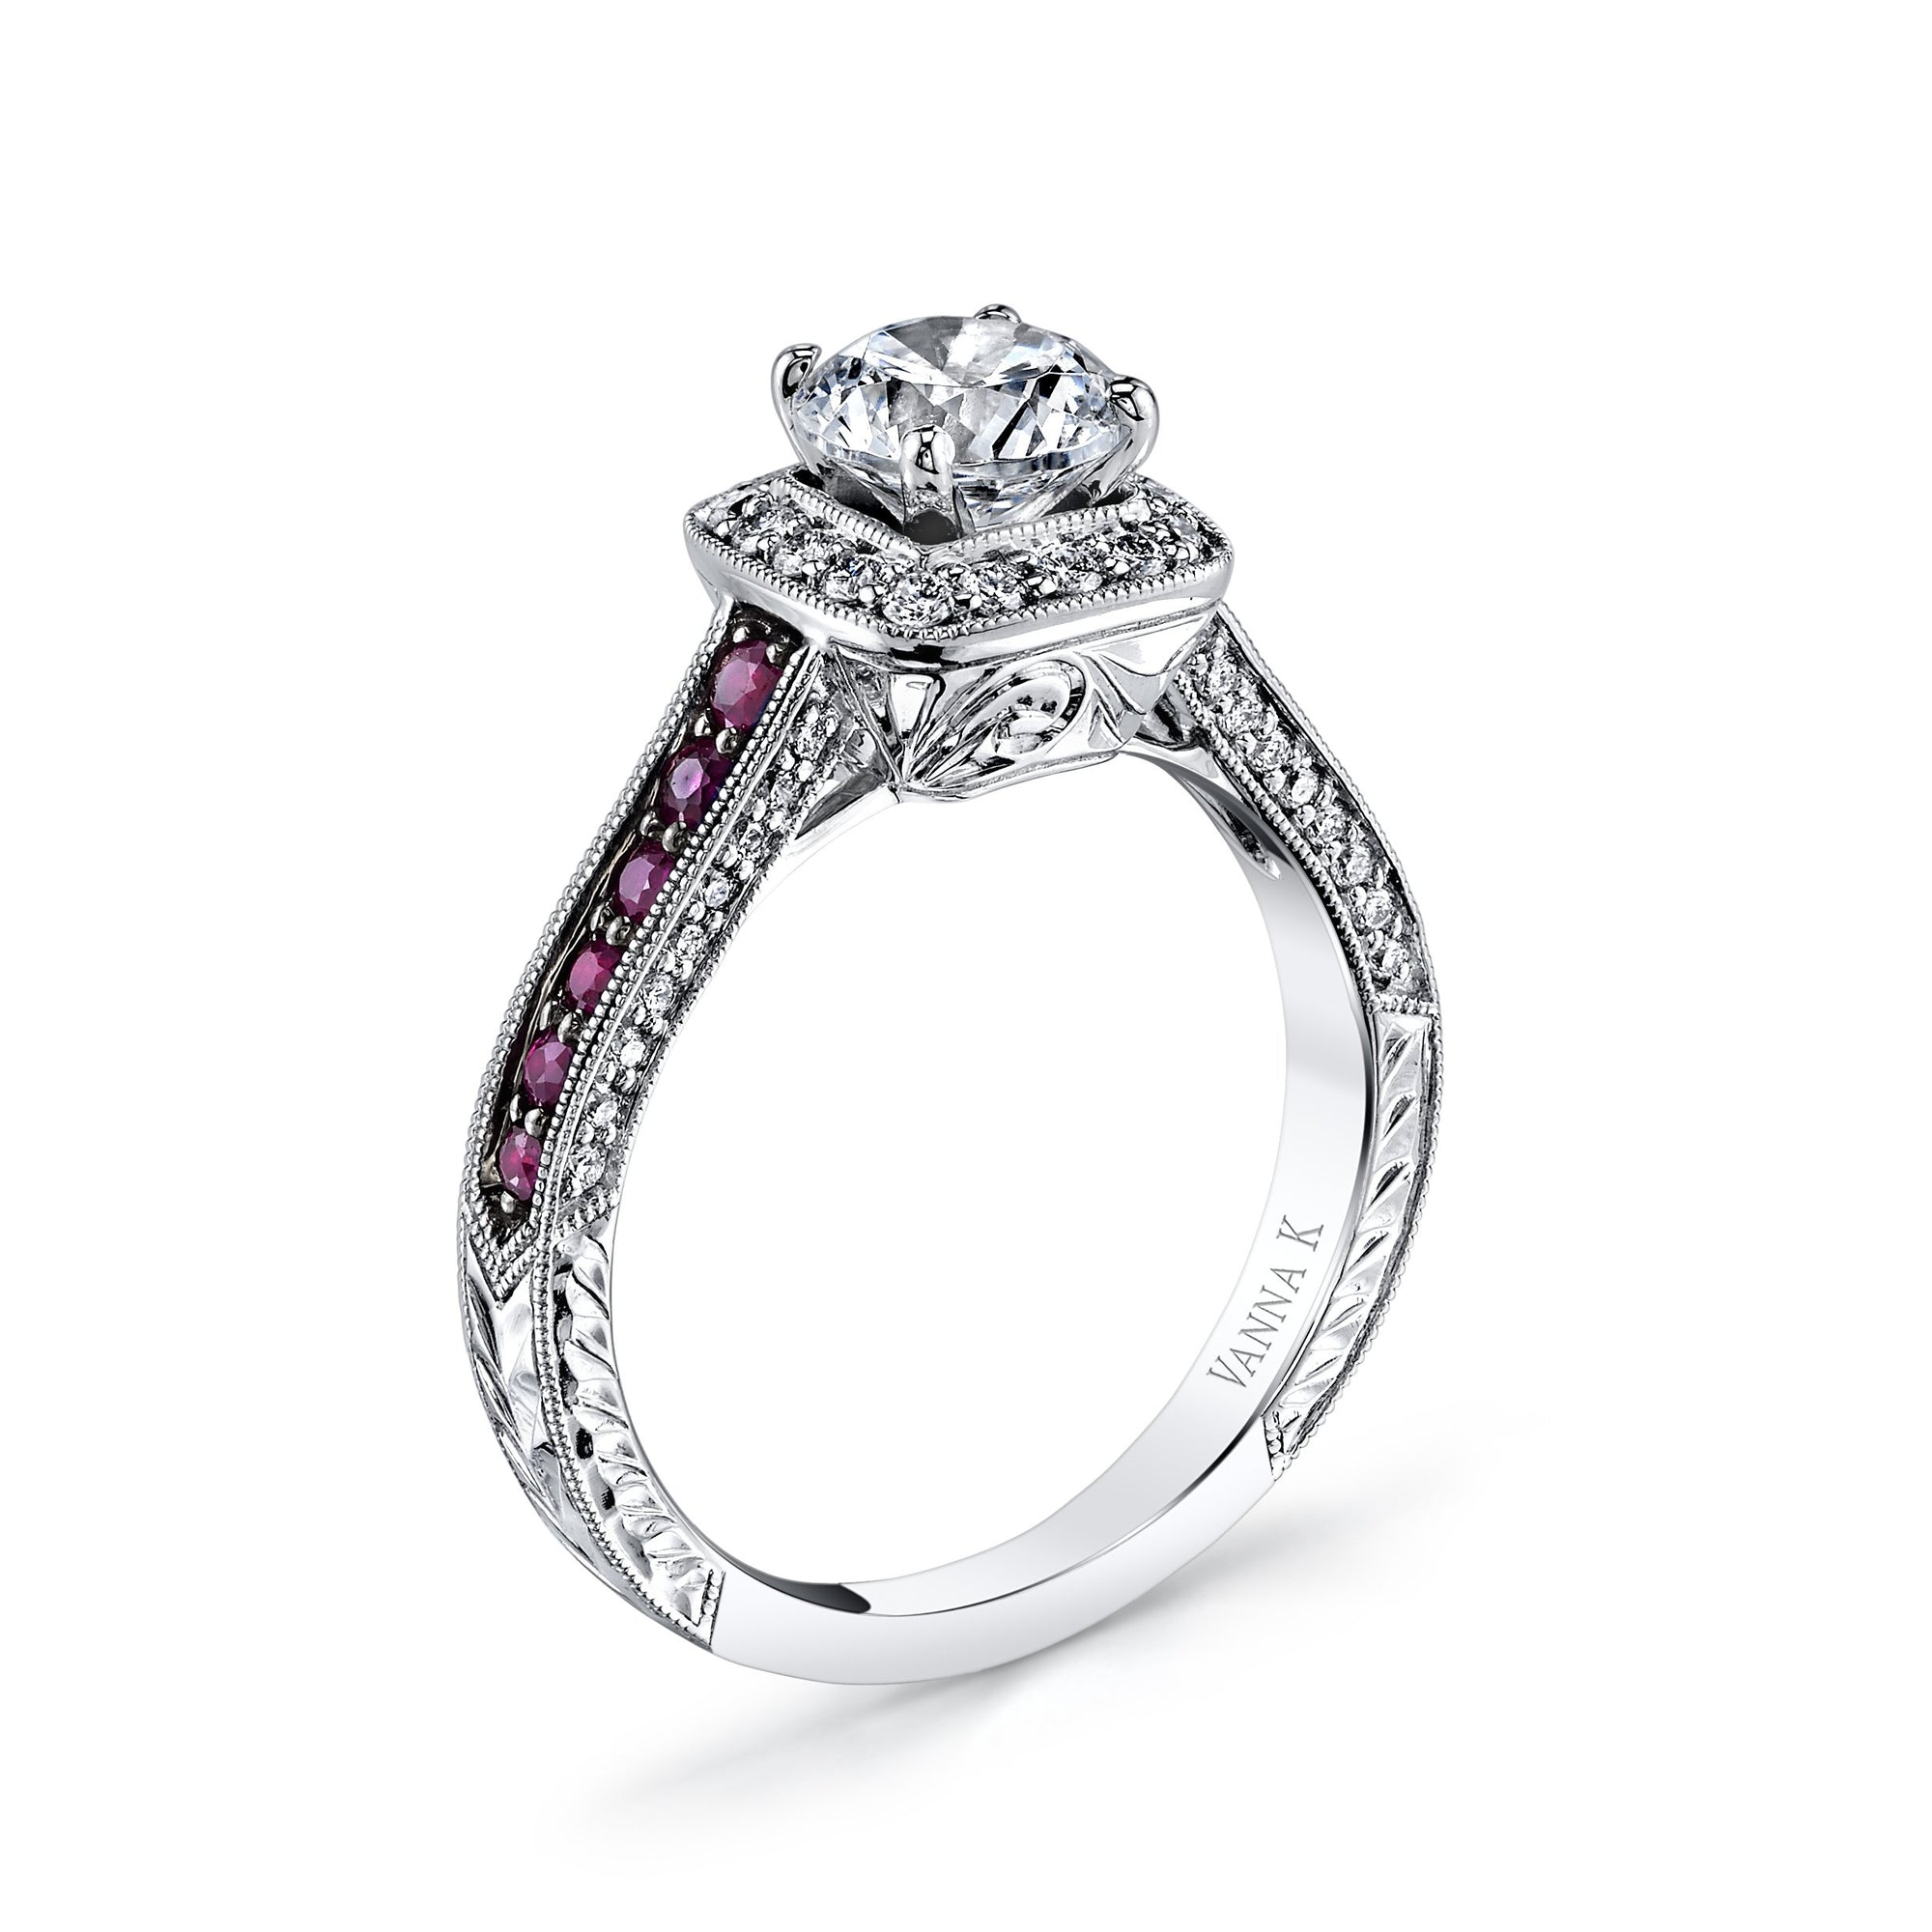 18K White Gold Halo Diamond And Ruby Engagement Ring